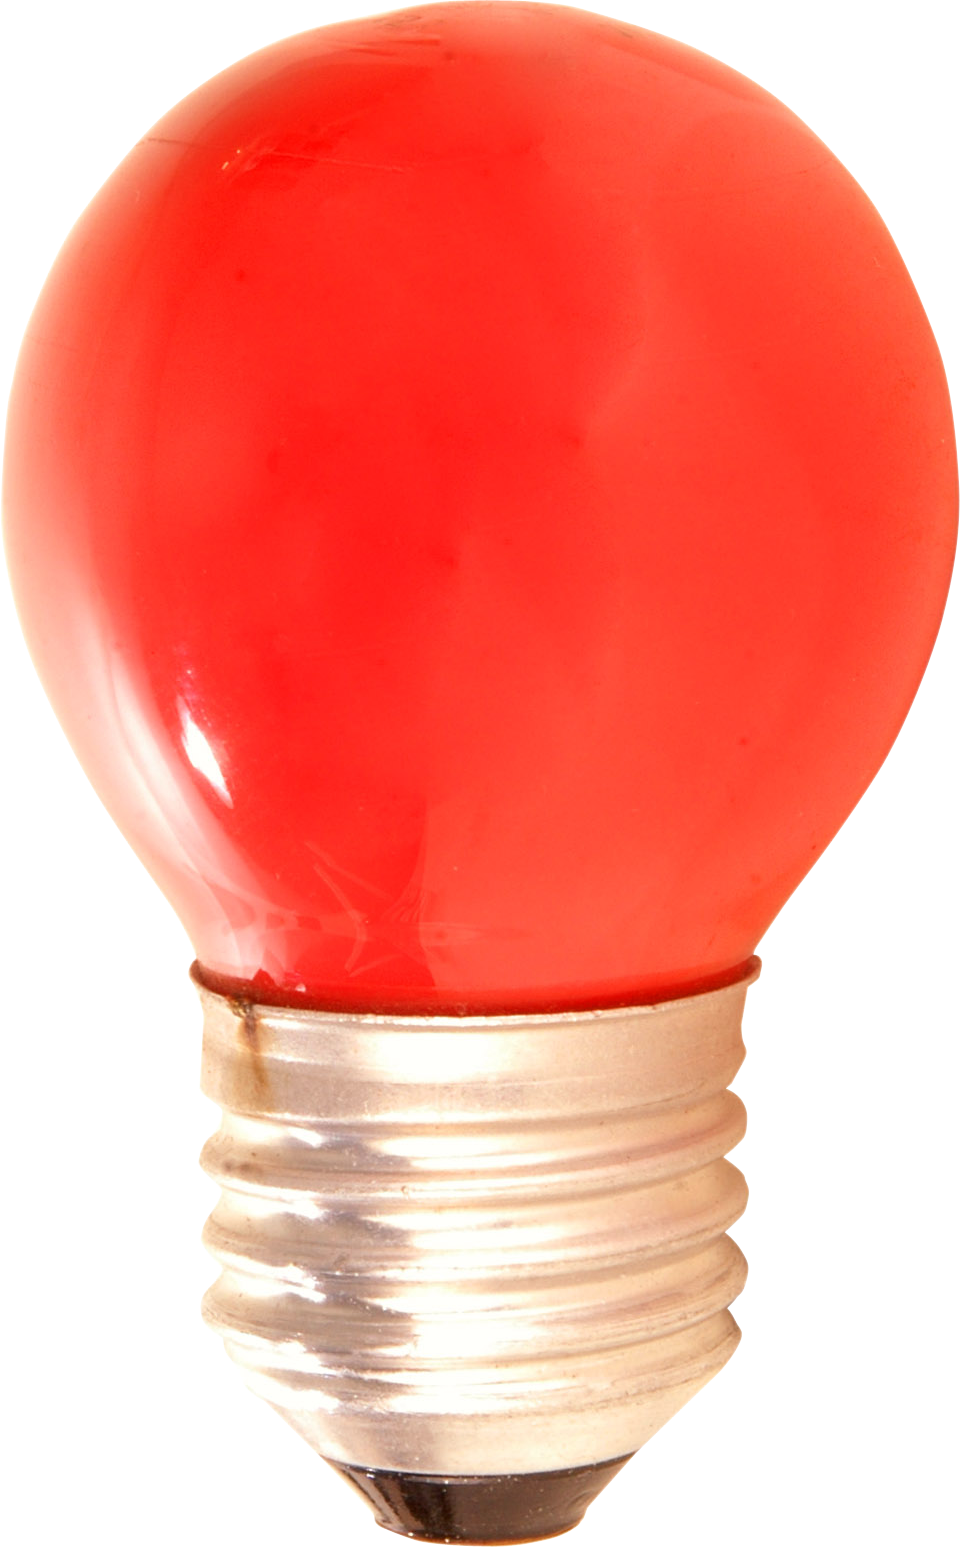 Red Night Lamp Png image #34939